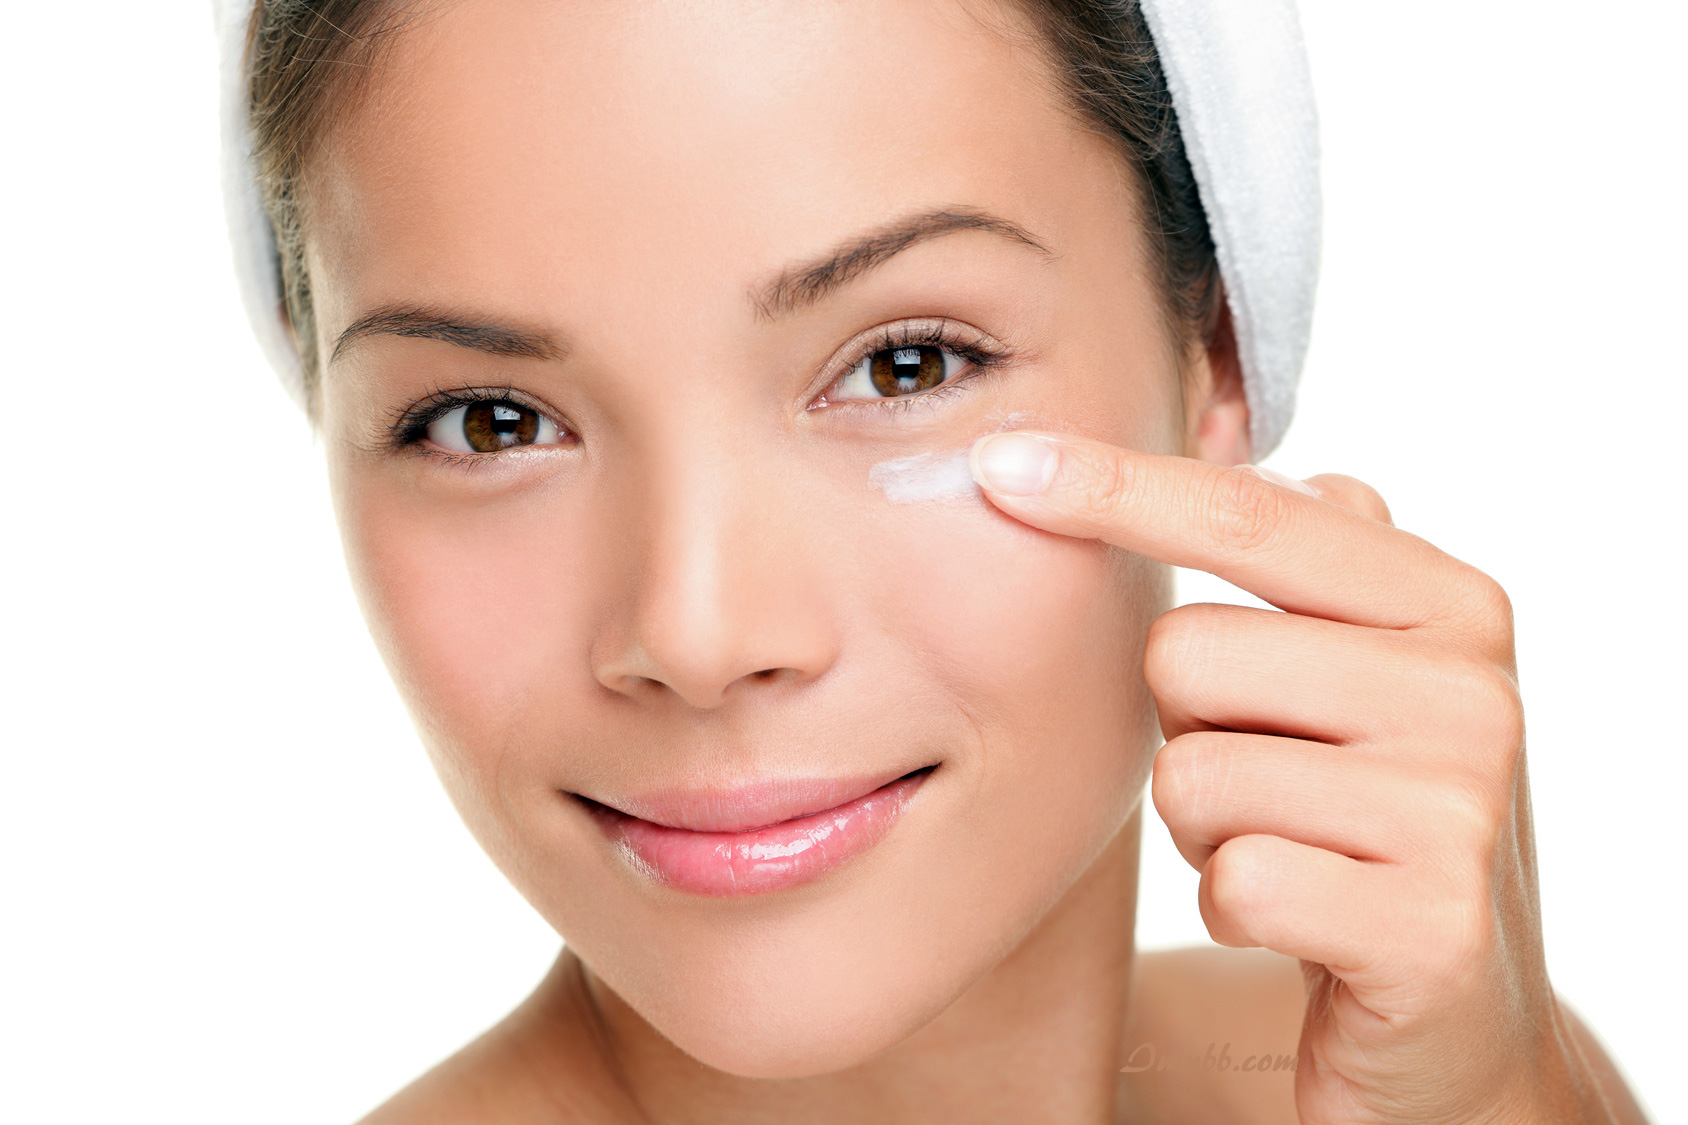 Removing Under Eye Patches With Coconut Oil